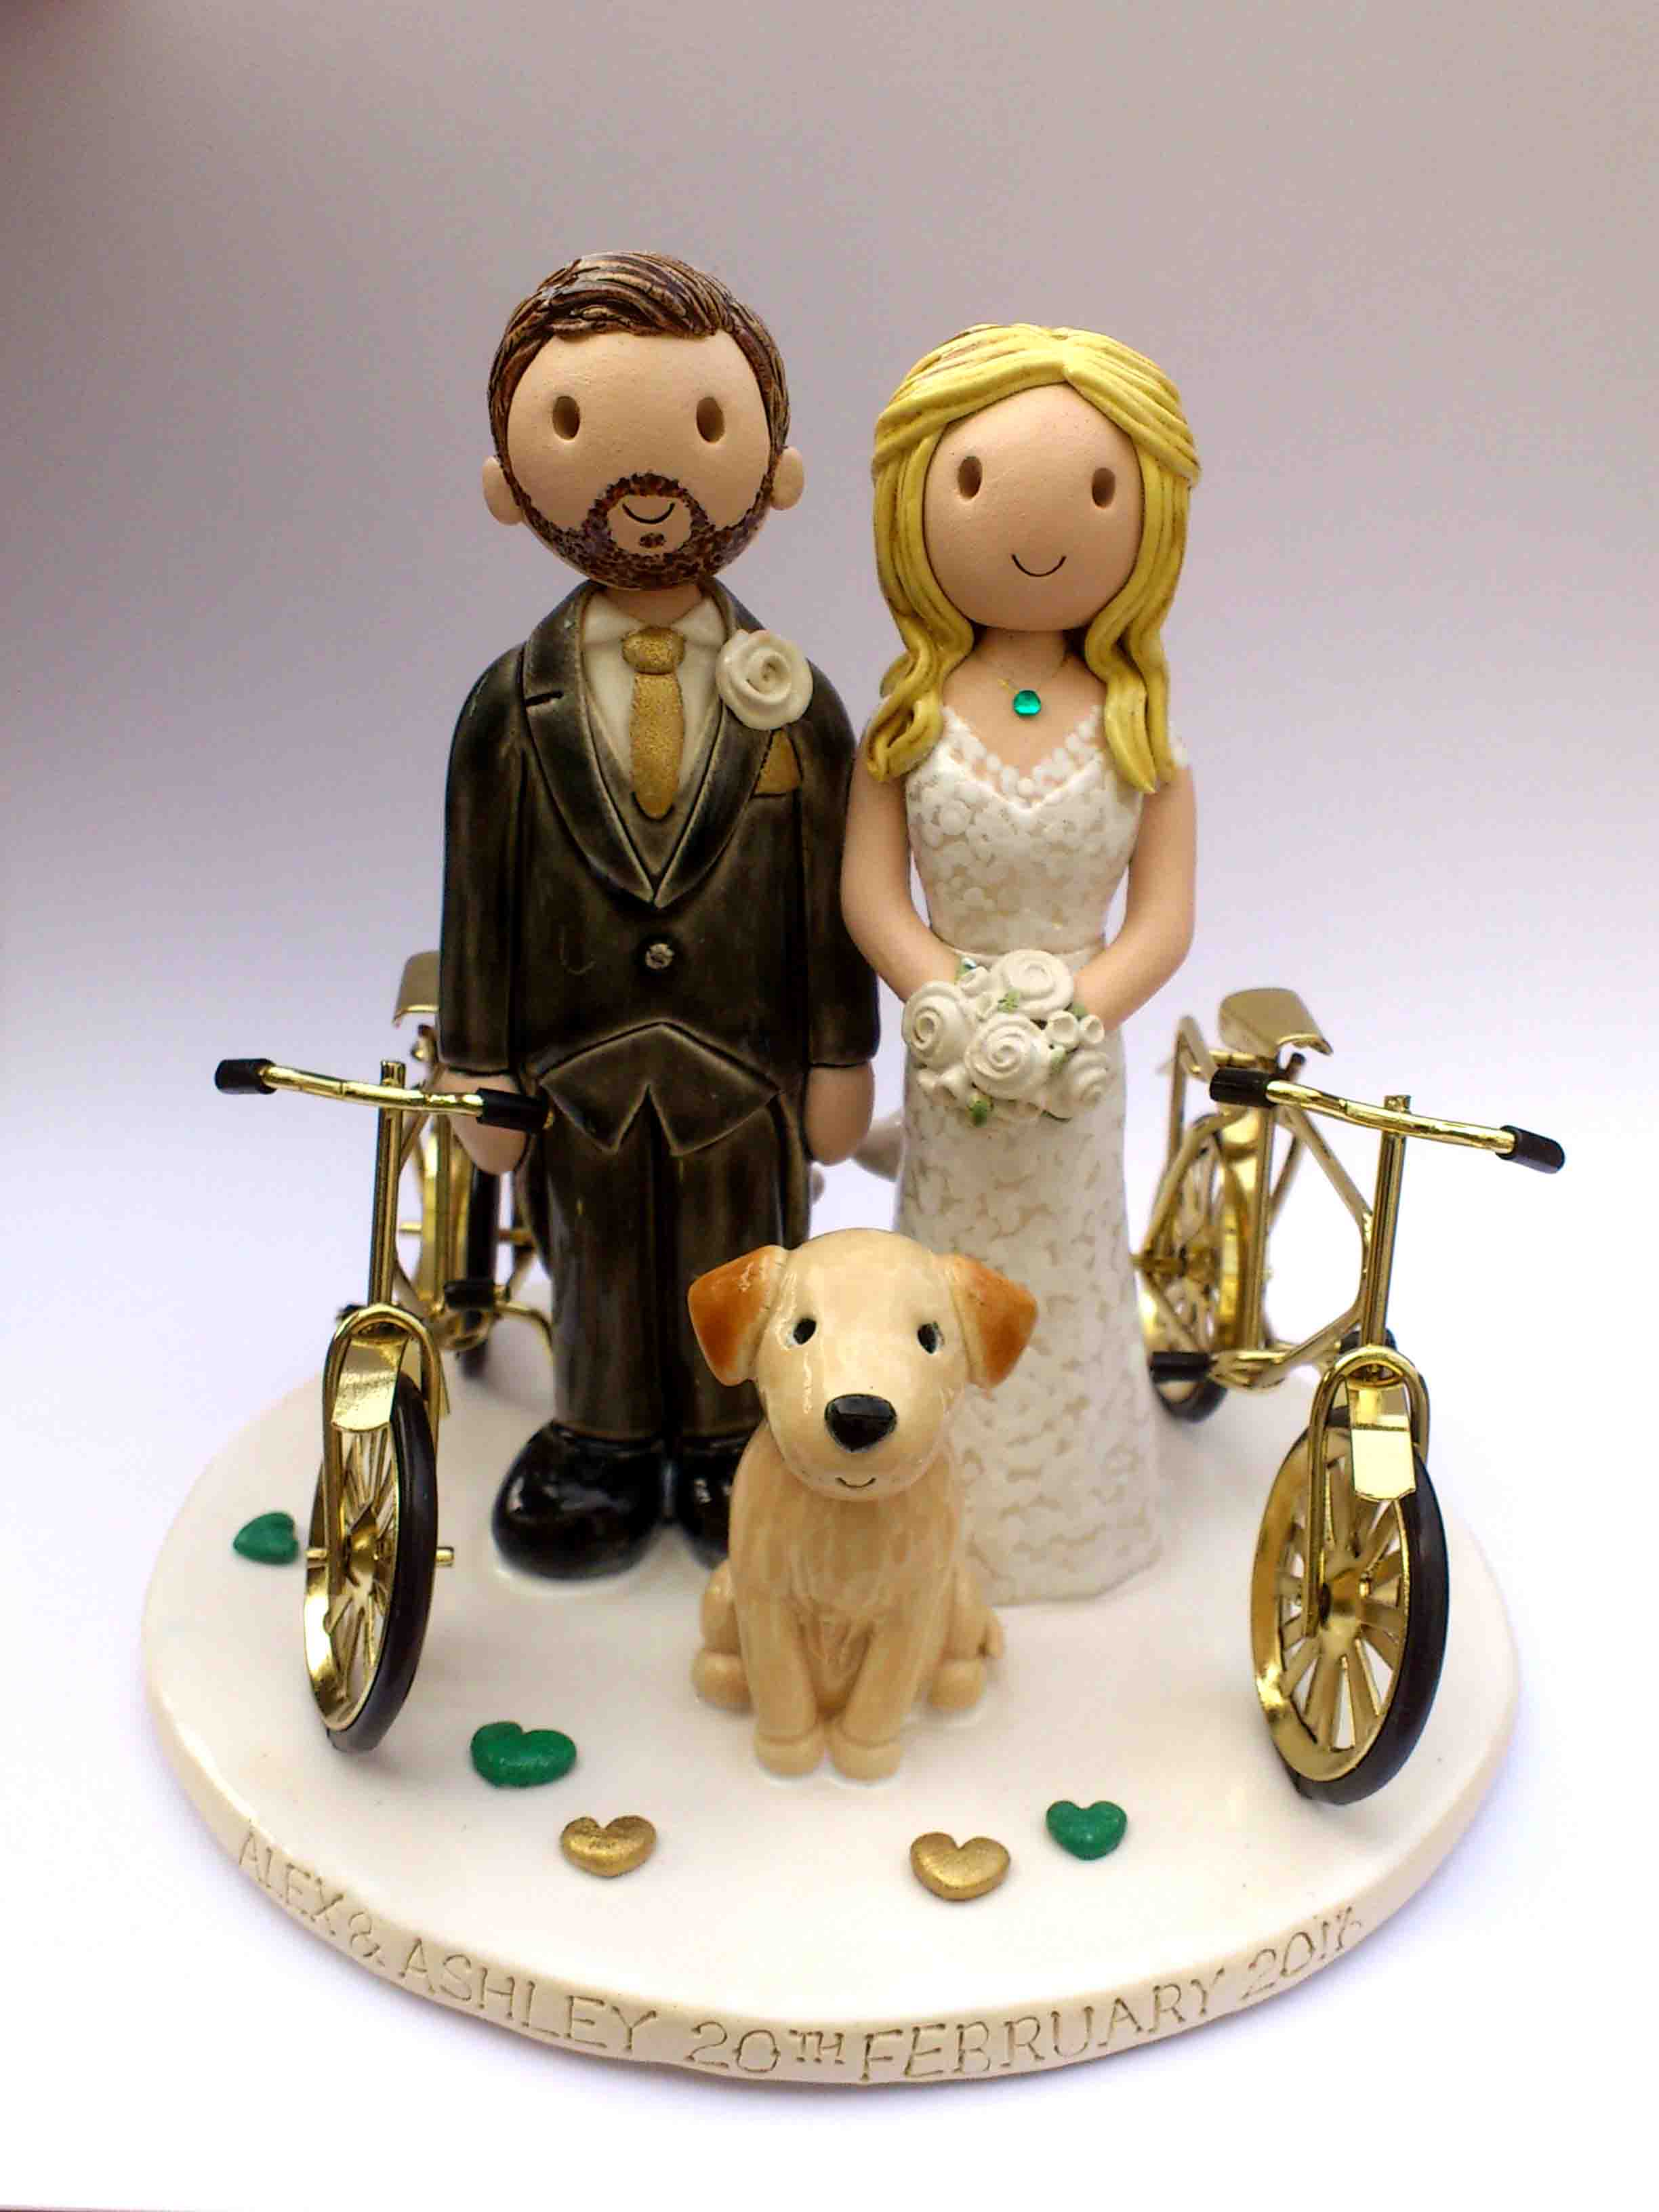 bicycle wedding cake topper uk wedding cake toppers gallery examples of toppers we 11736